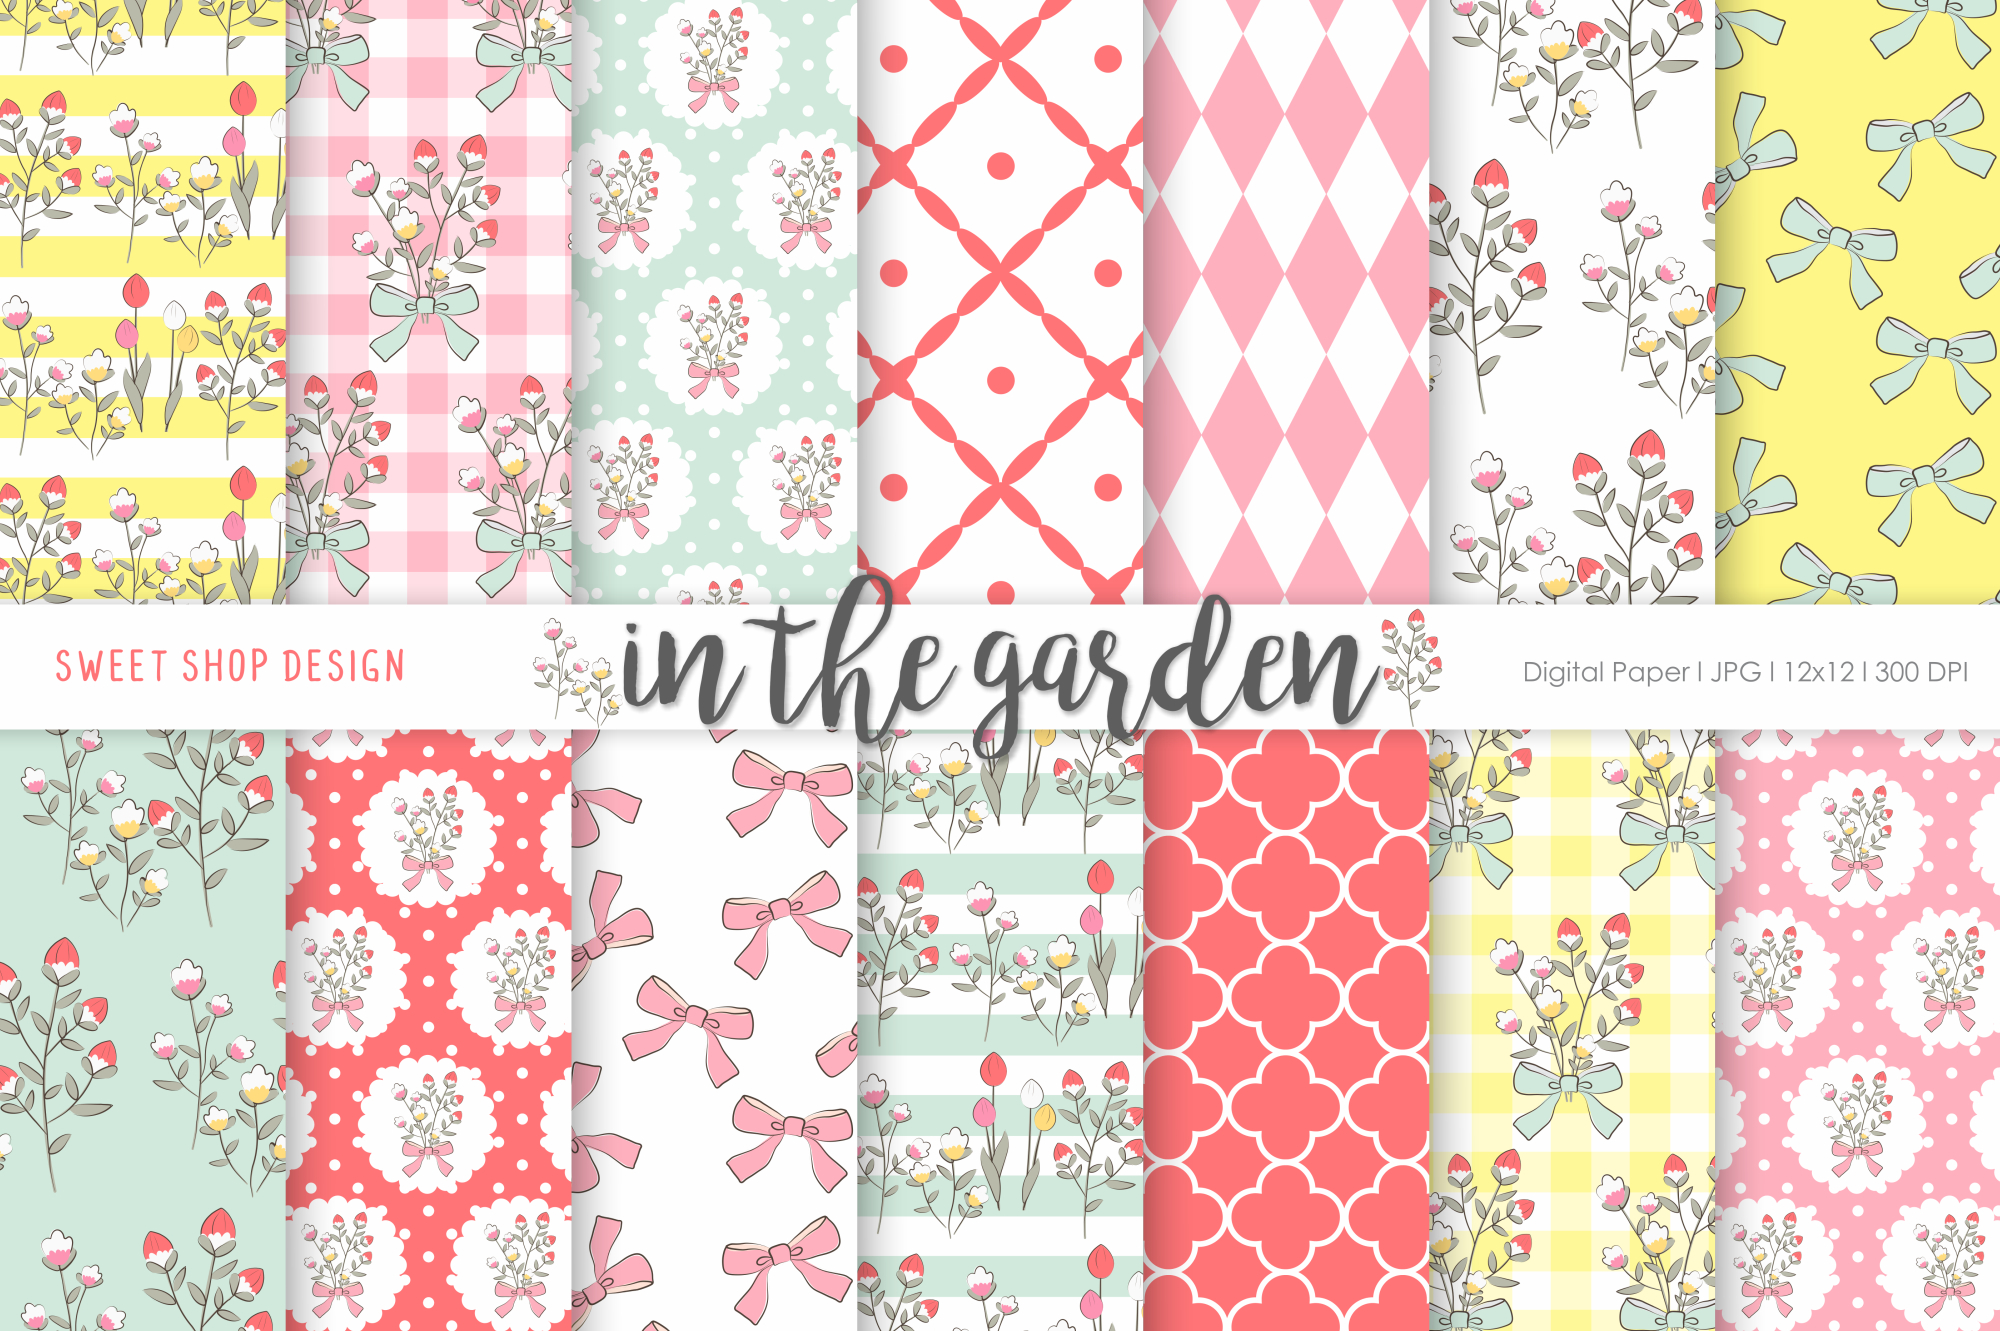 Download Free Digital Paper In The Garden Graphic By Sweet Shop Design for Cricut Explore, Silhouette and other cutting machines.